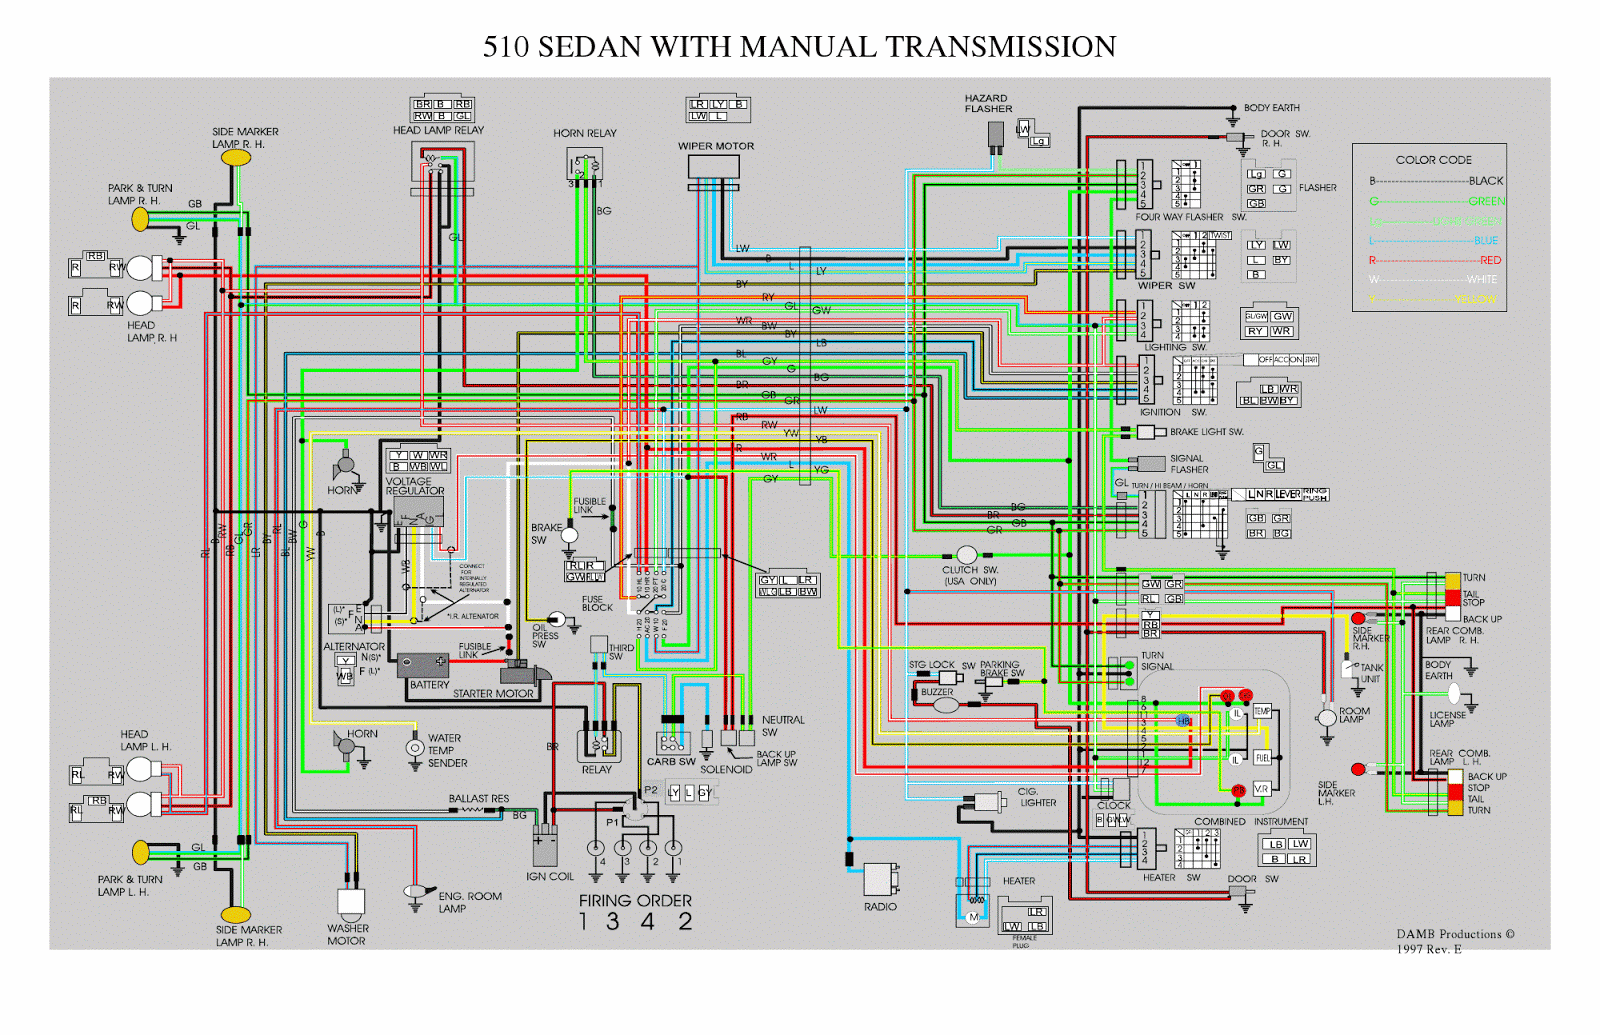 datproject wiring fuel gaugealthough that wiring diagram is for a 1970 datsun 510 w manual transmission [ 1600 x 1035 Pixel ]